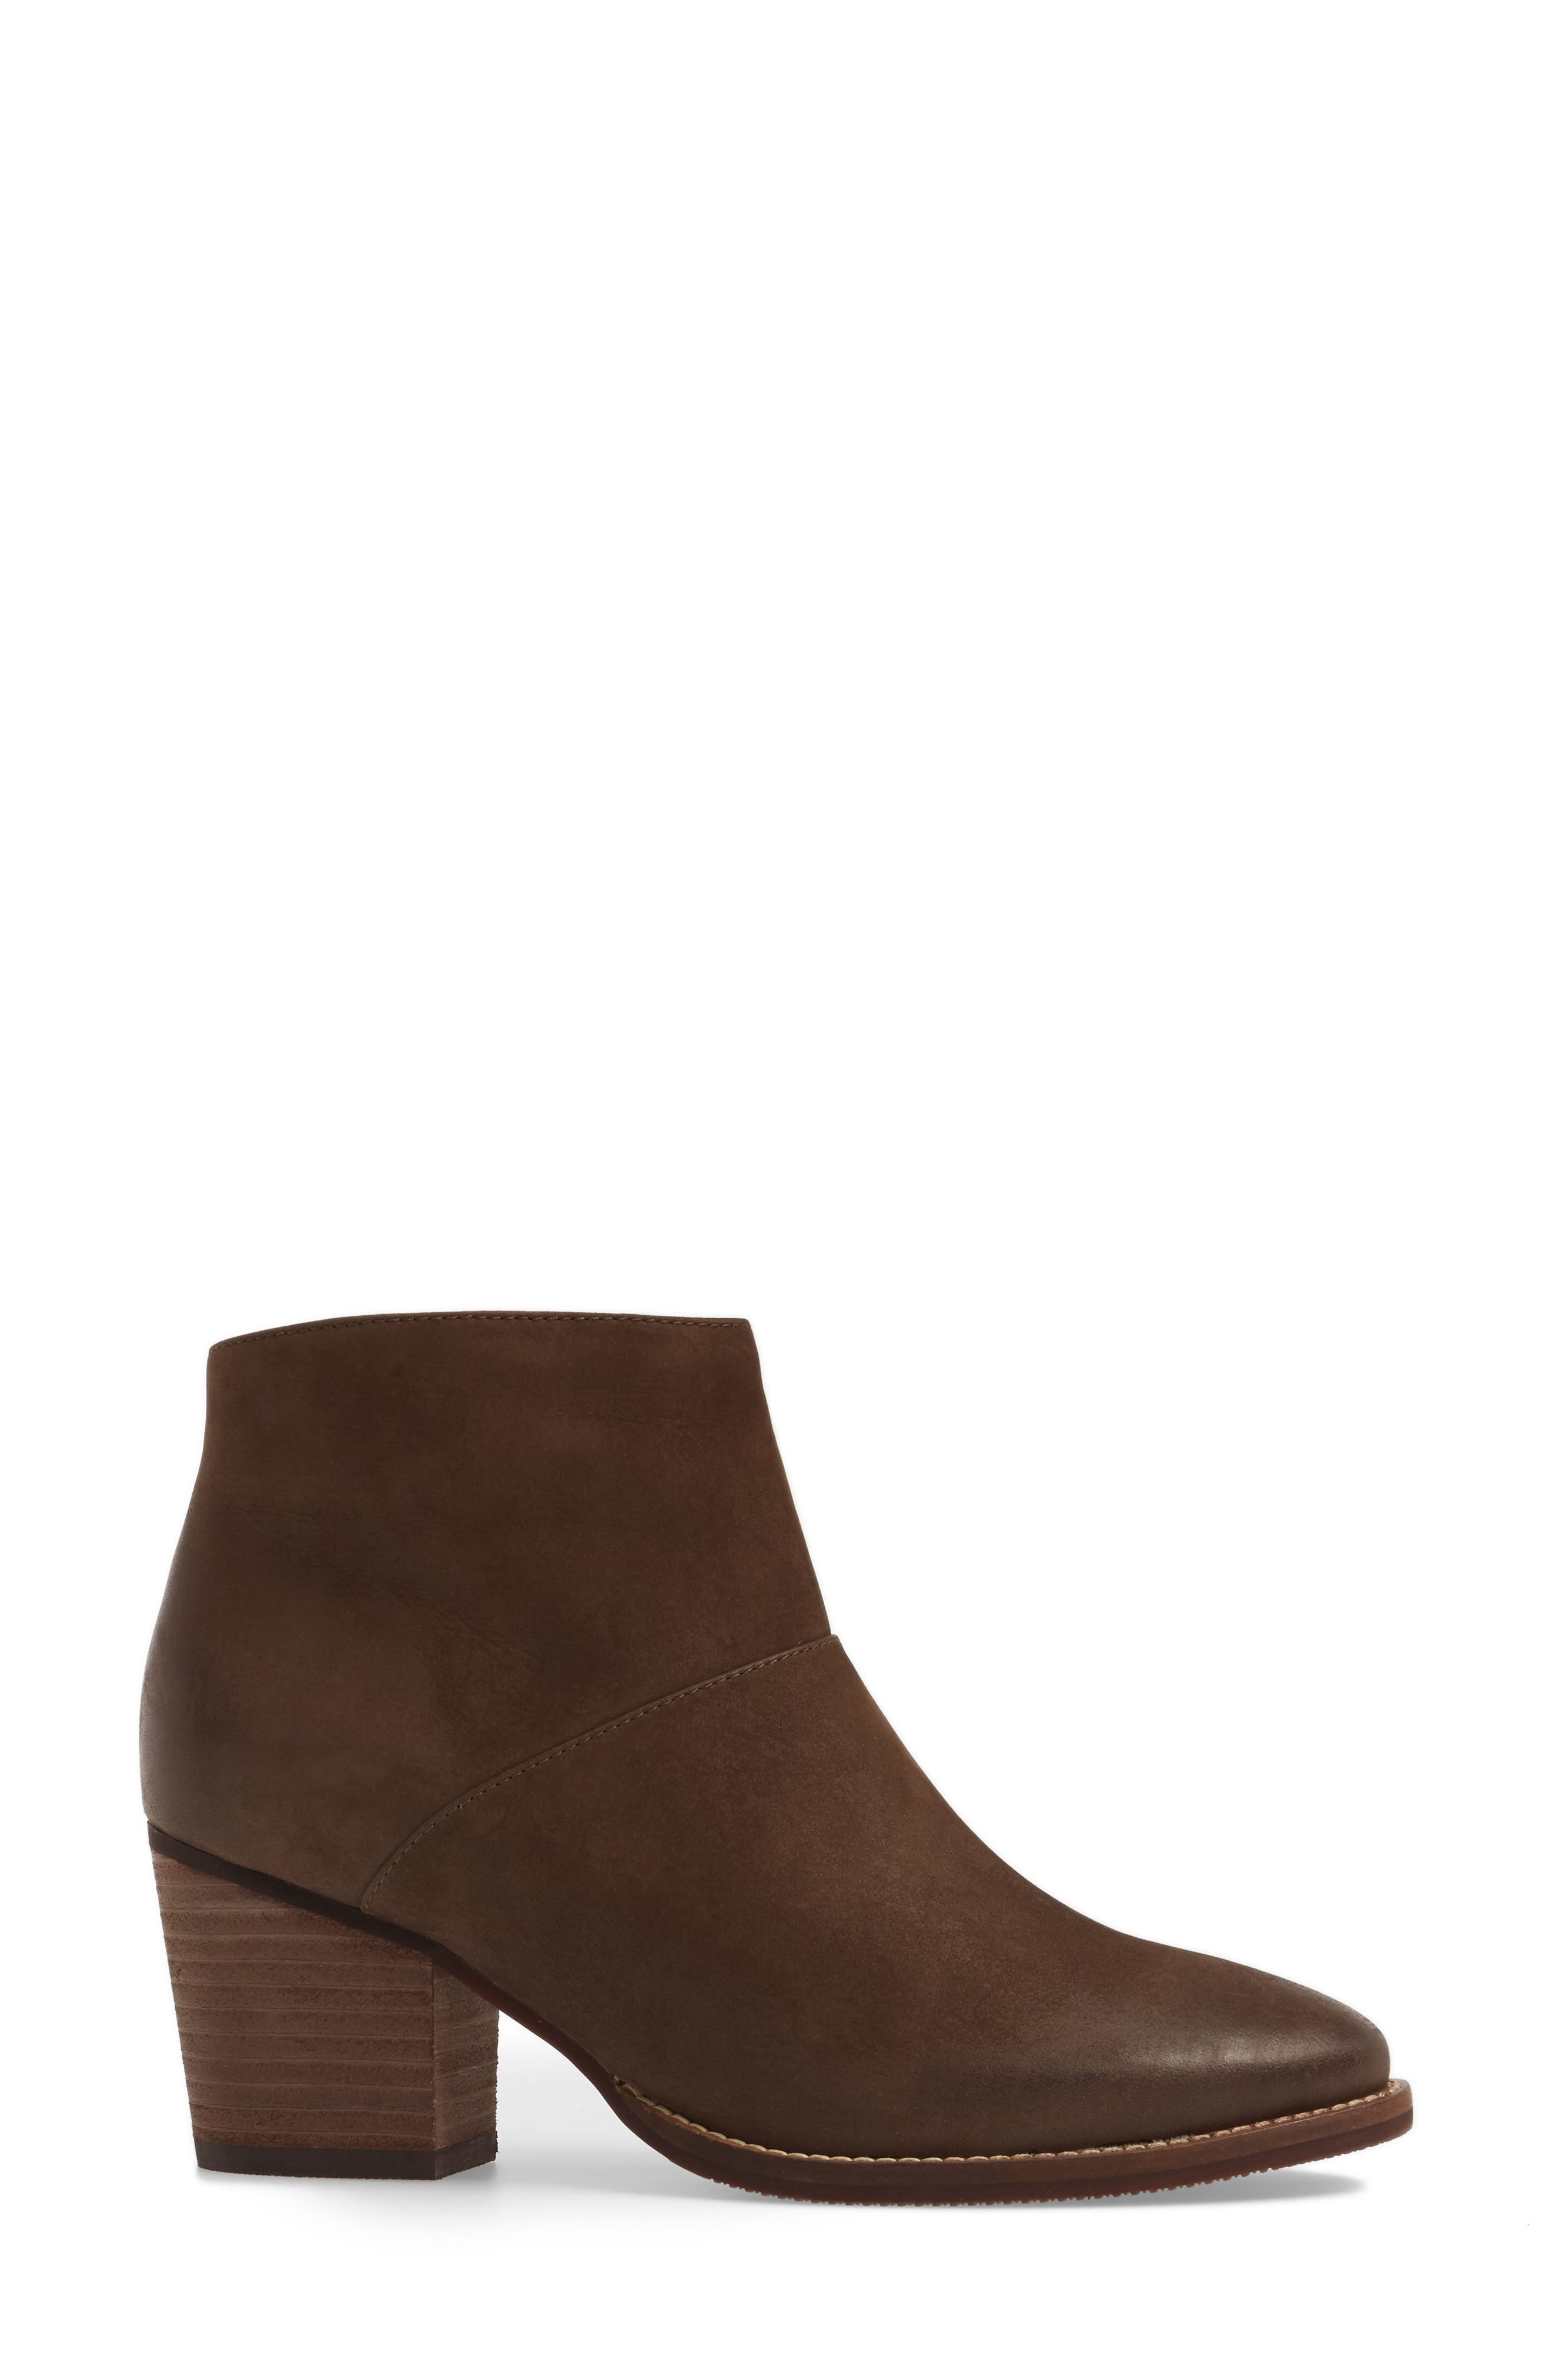 Nelli Waterproof Bootie,                             Alternate thumbnail 3, color,                             Taupe Nubuck Leather